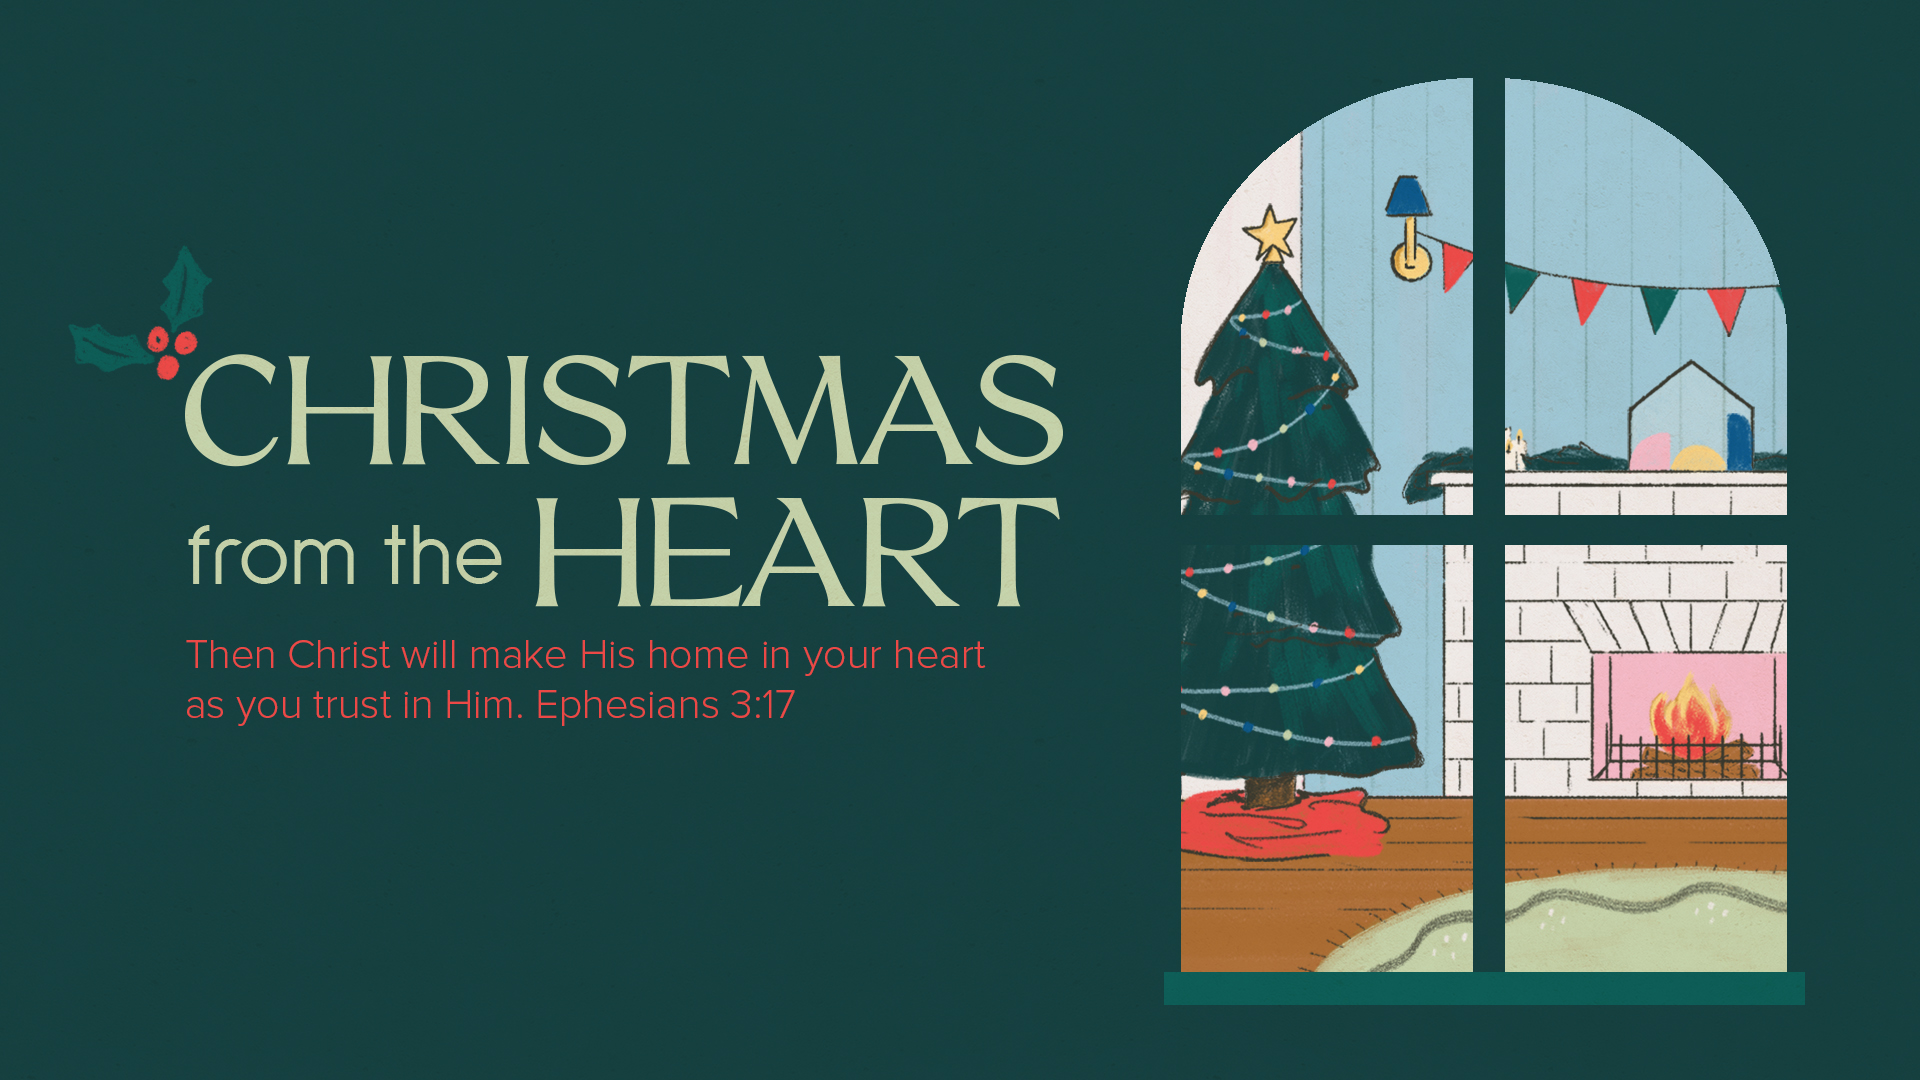 christmasfromtheheart 1920x1080